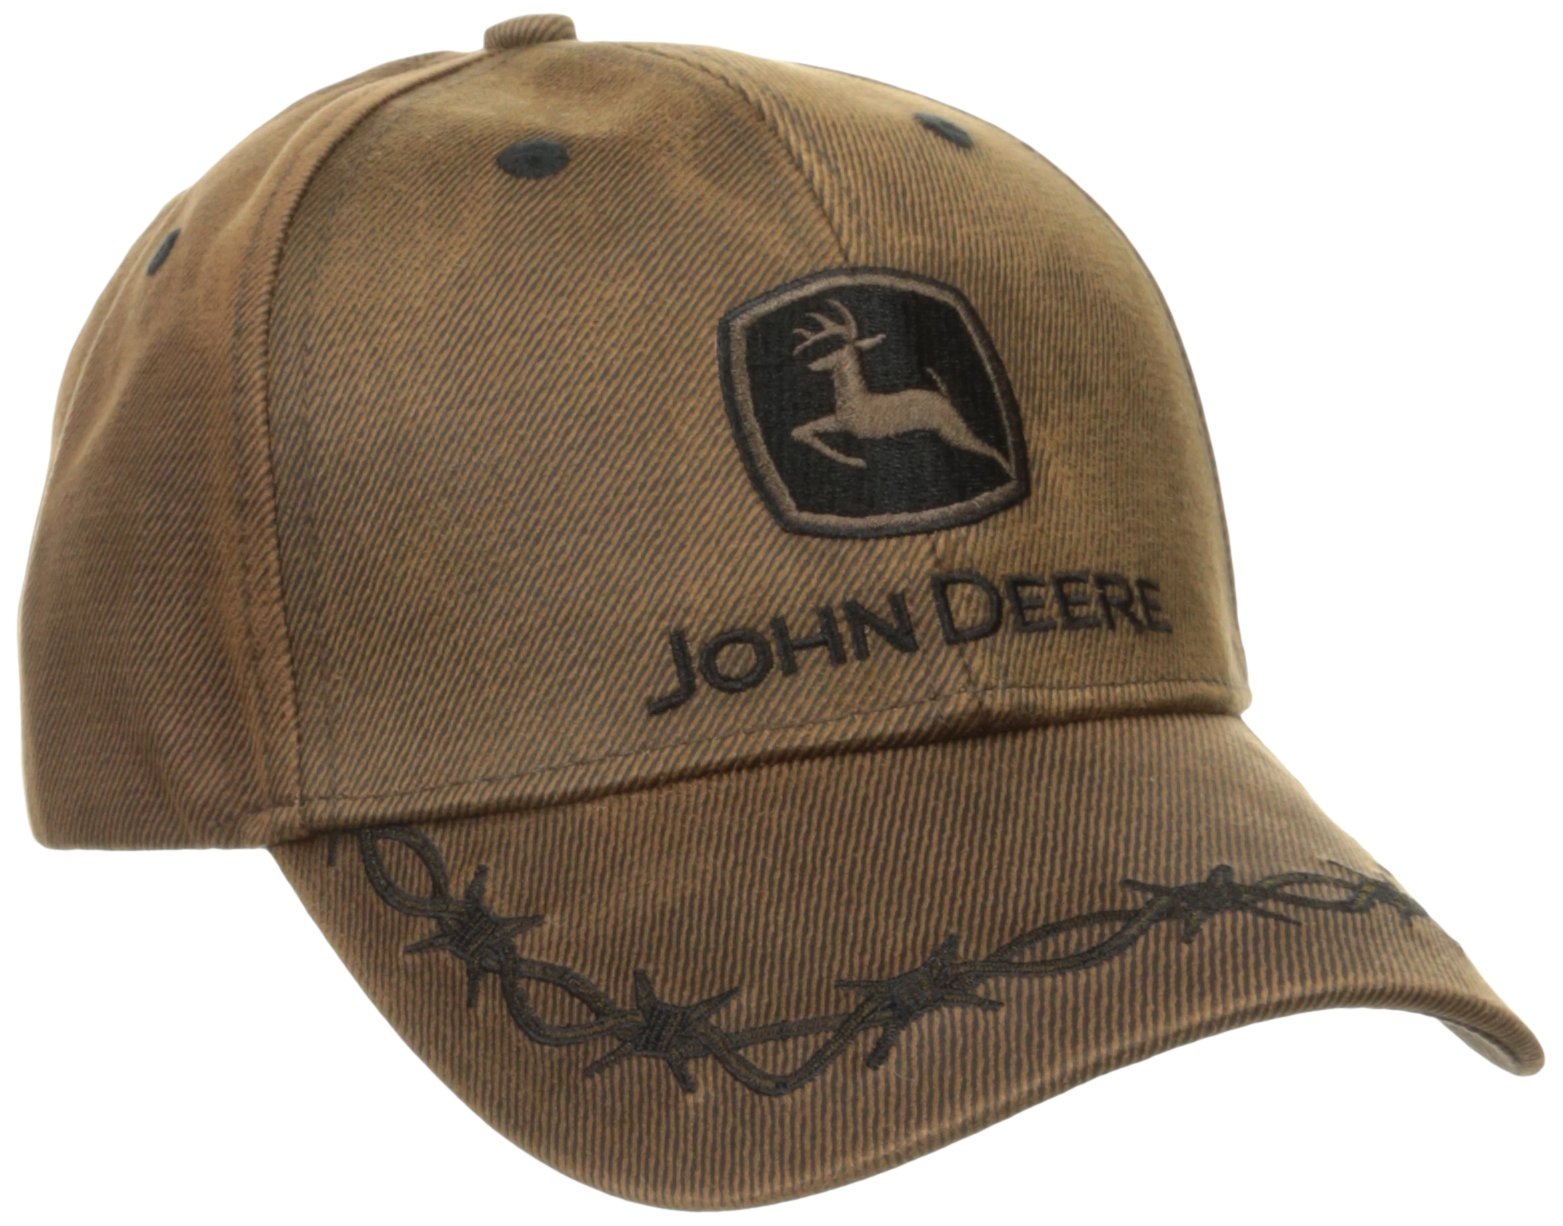 Oilskin Cap, 6-Panel One Size Fits All, Brown